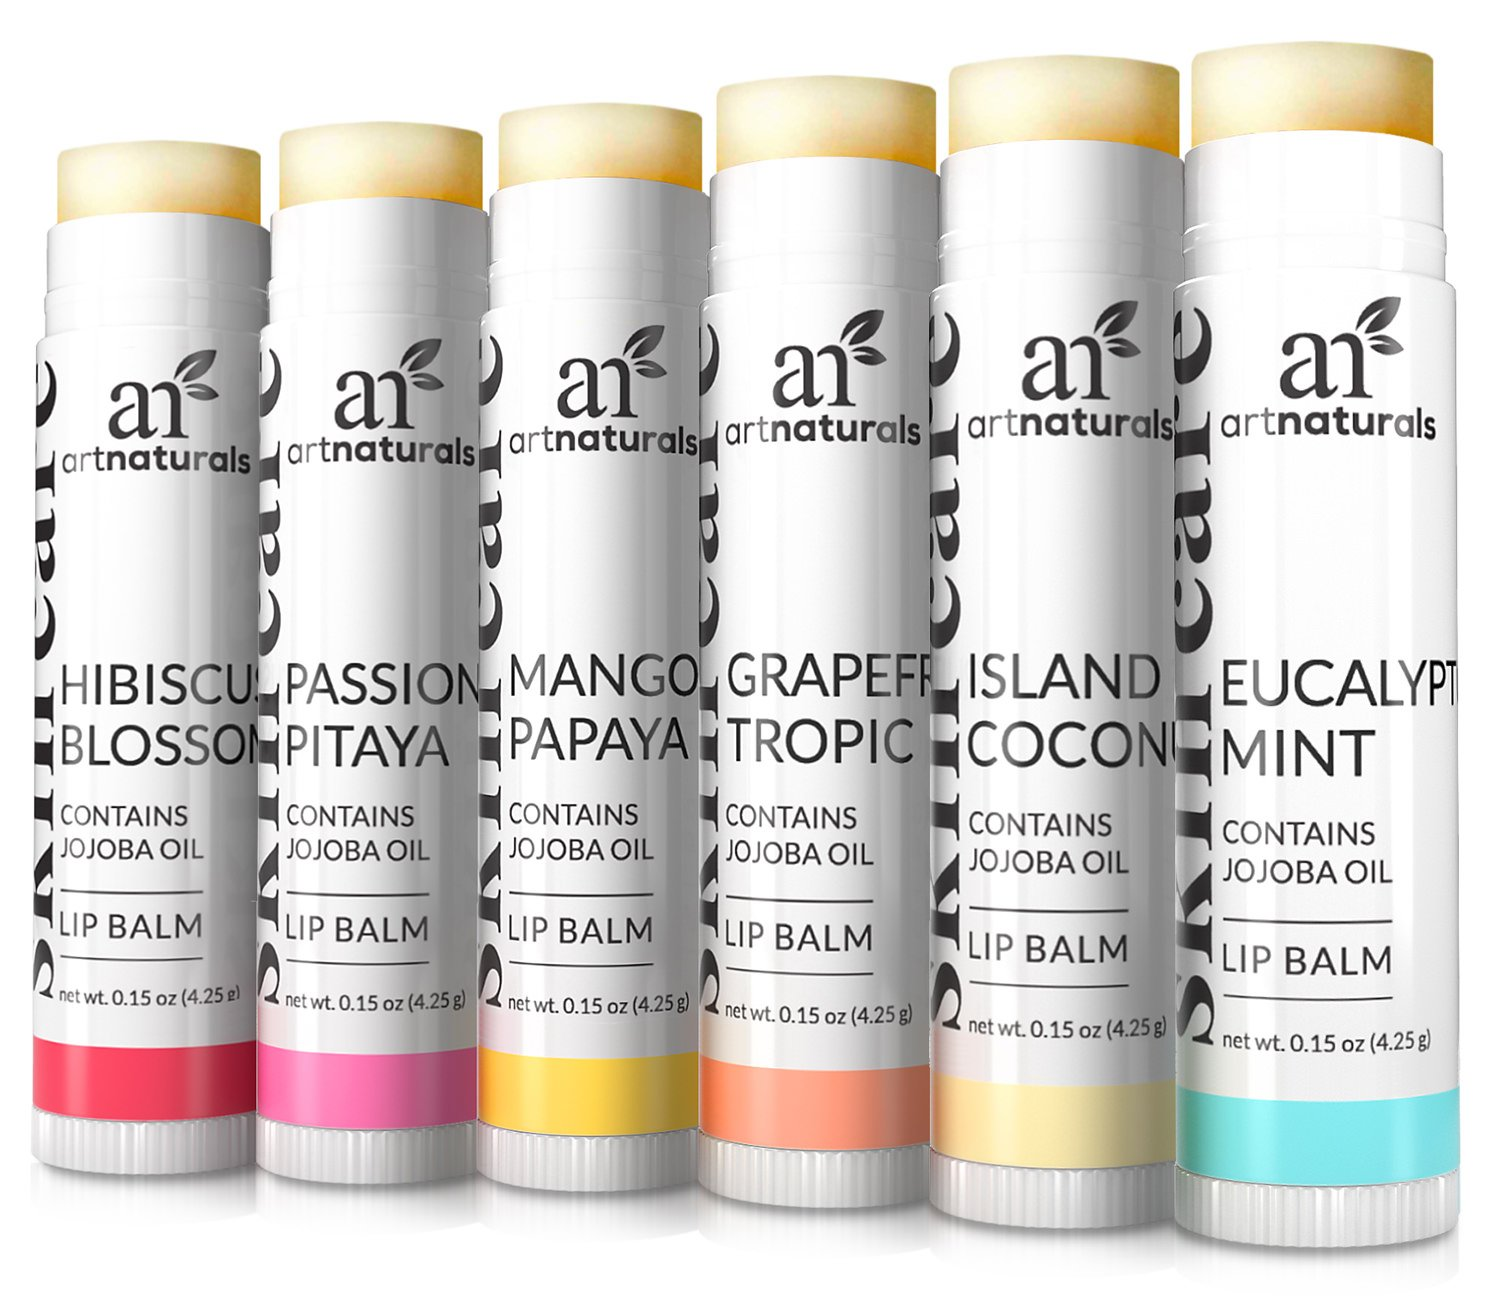 Art Naturals Natural Lip Balm Beeswax, Assorted Flavors by Art Naturals